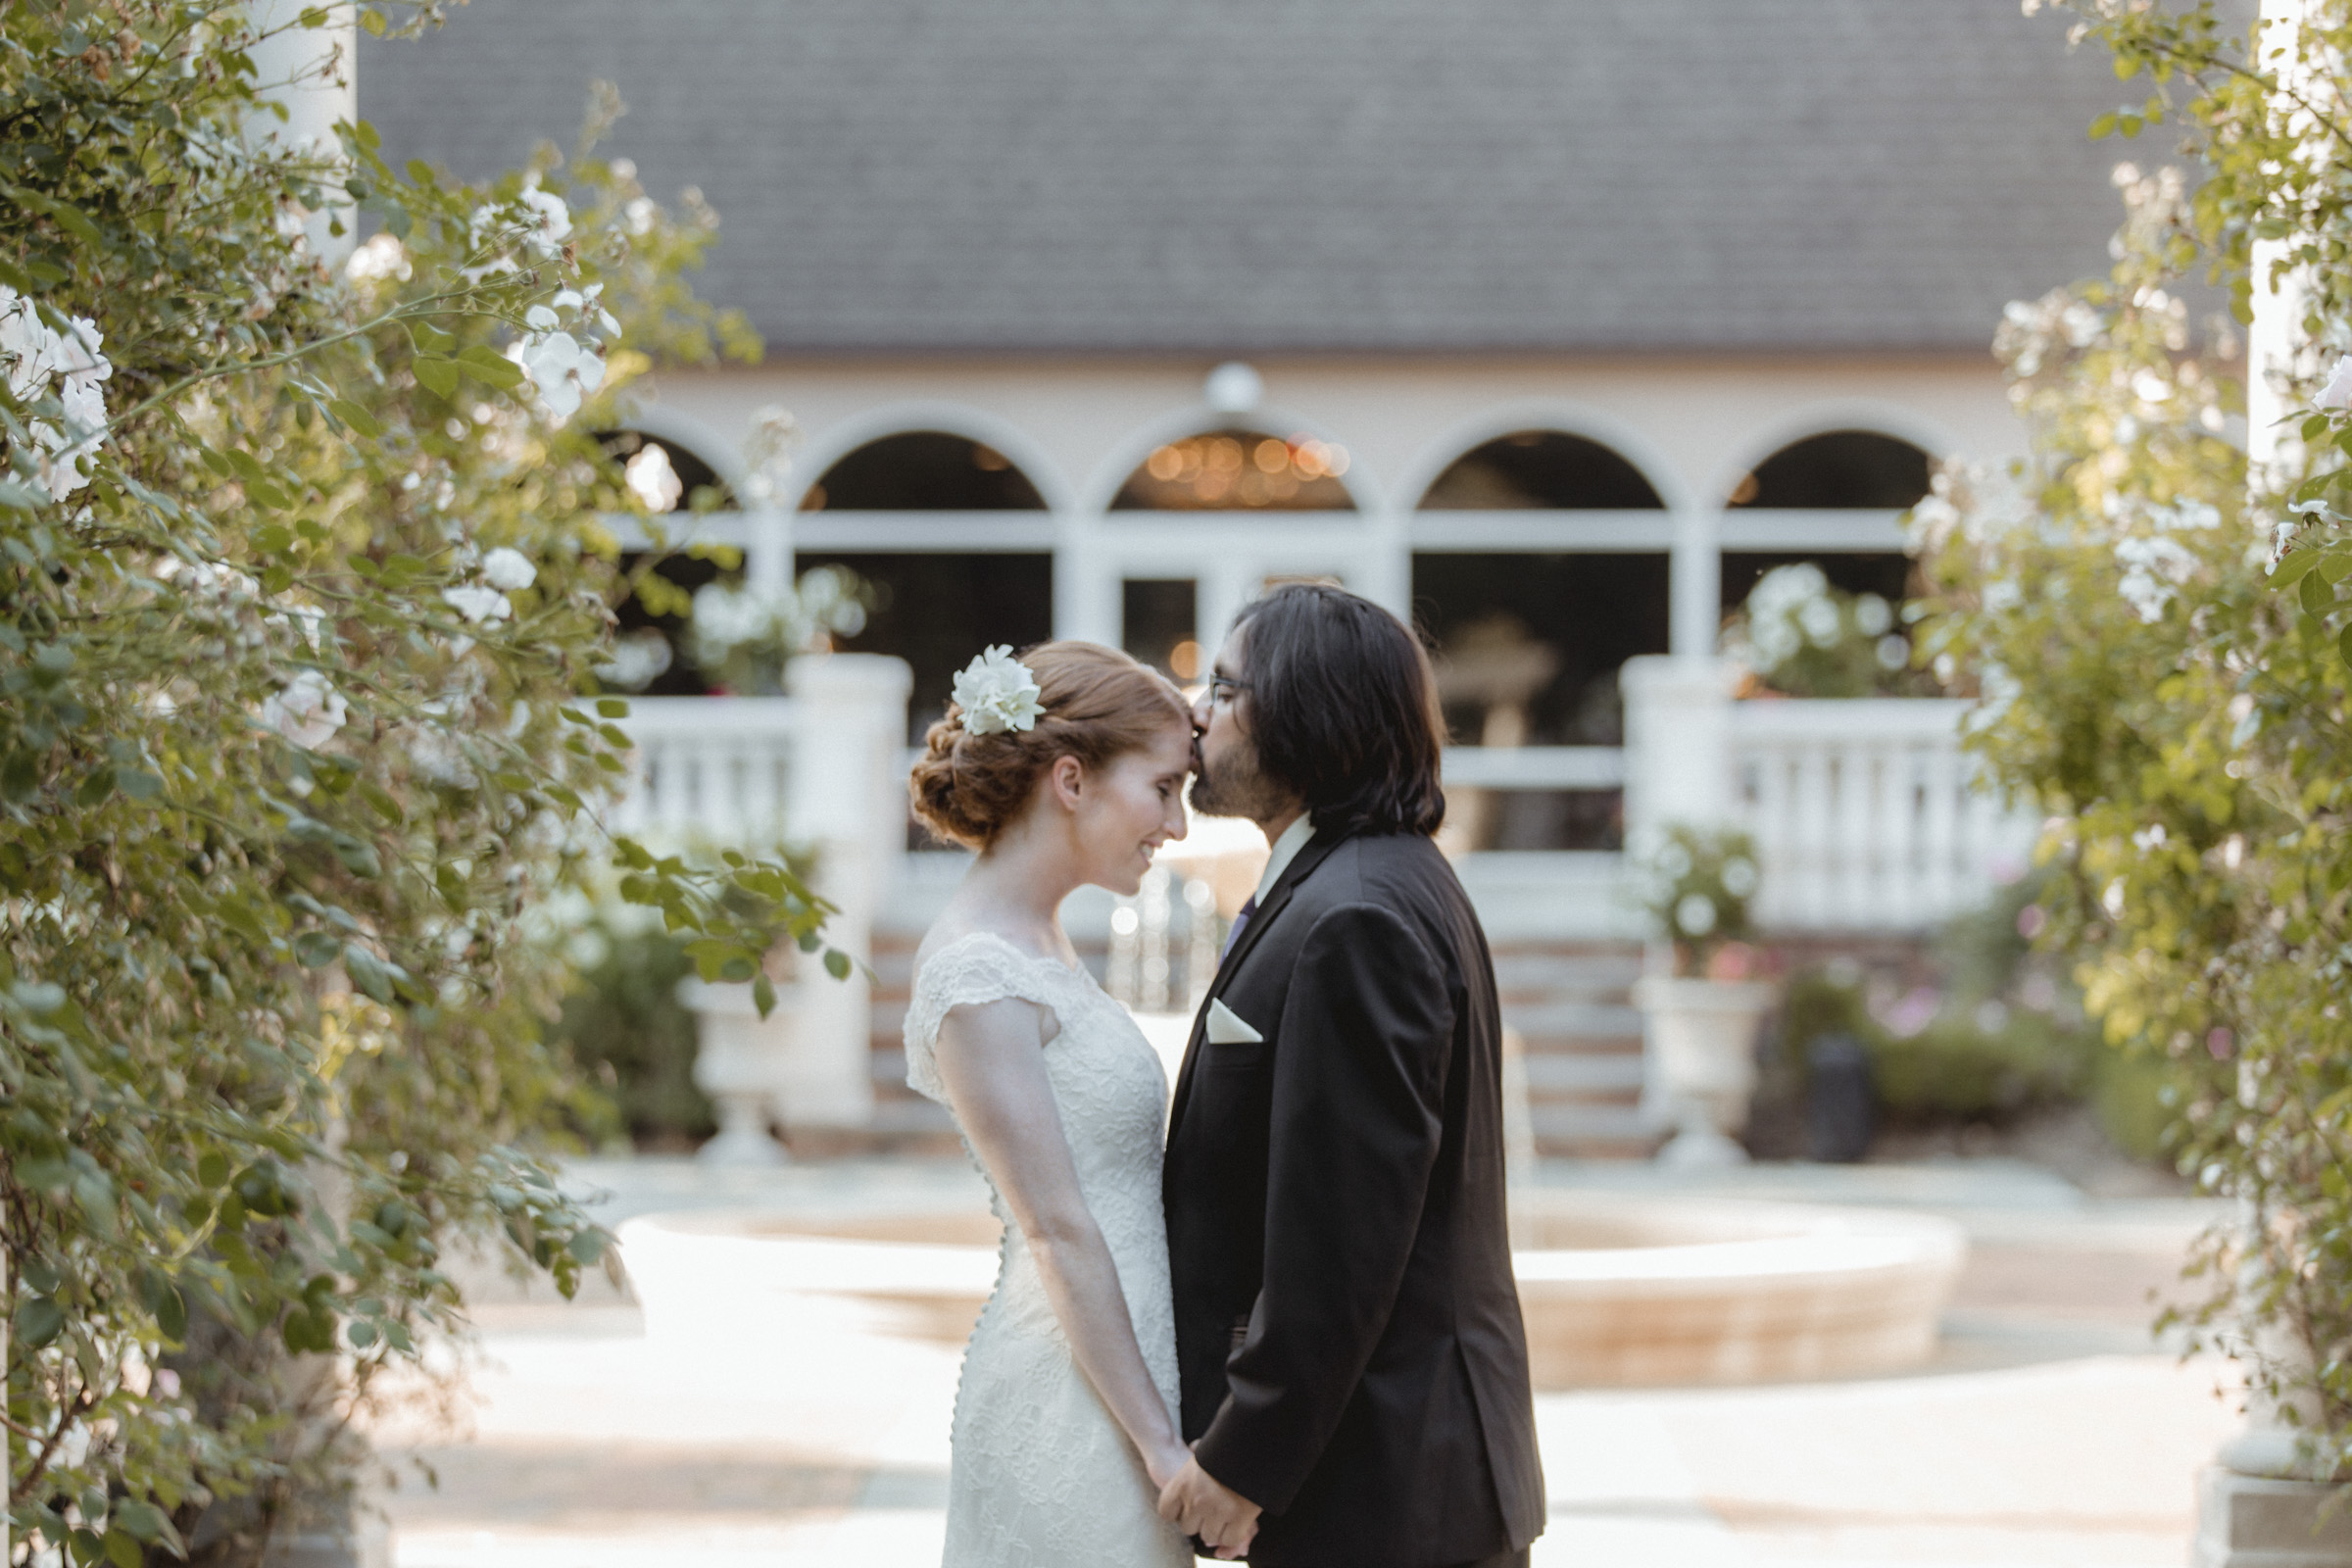 Groom kisses bride's forehead - Estate at Florentine Gardens wedding - Hudson Valley Wedding - Kelsey & Anish's wedding - Amy Sims Photography